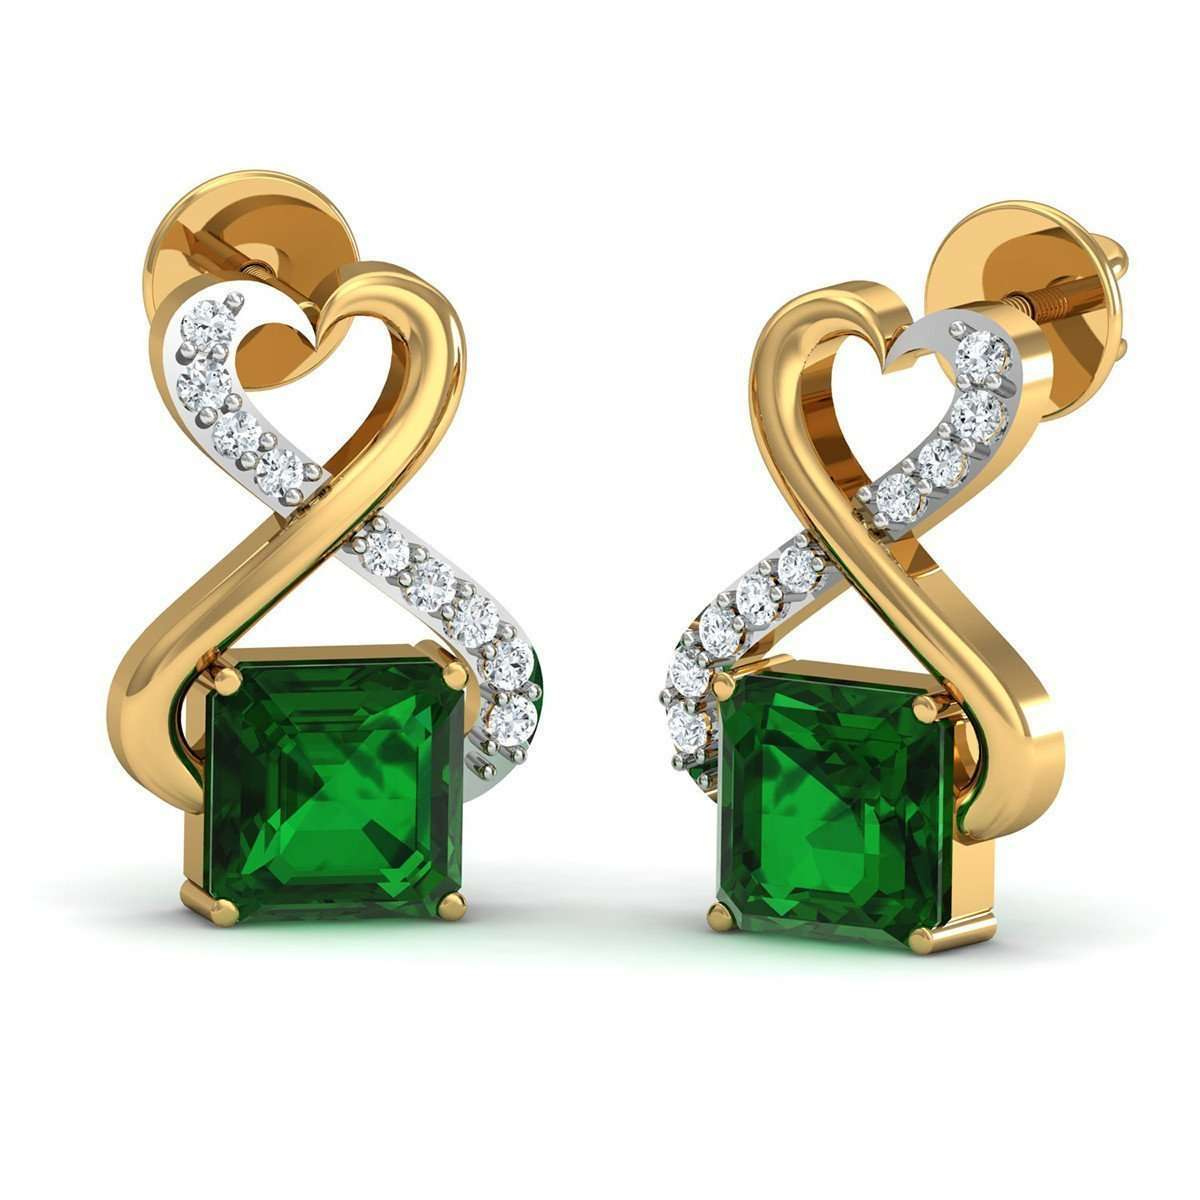 Emerald Cut Nature Inspired Brazilian Emerald and Diamond Earrings in 10kt Yellow Gold-Diamoire Jewels-JewelStreet US